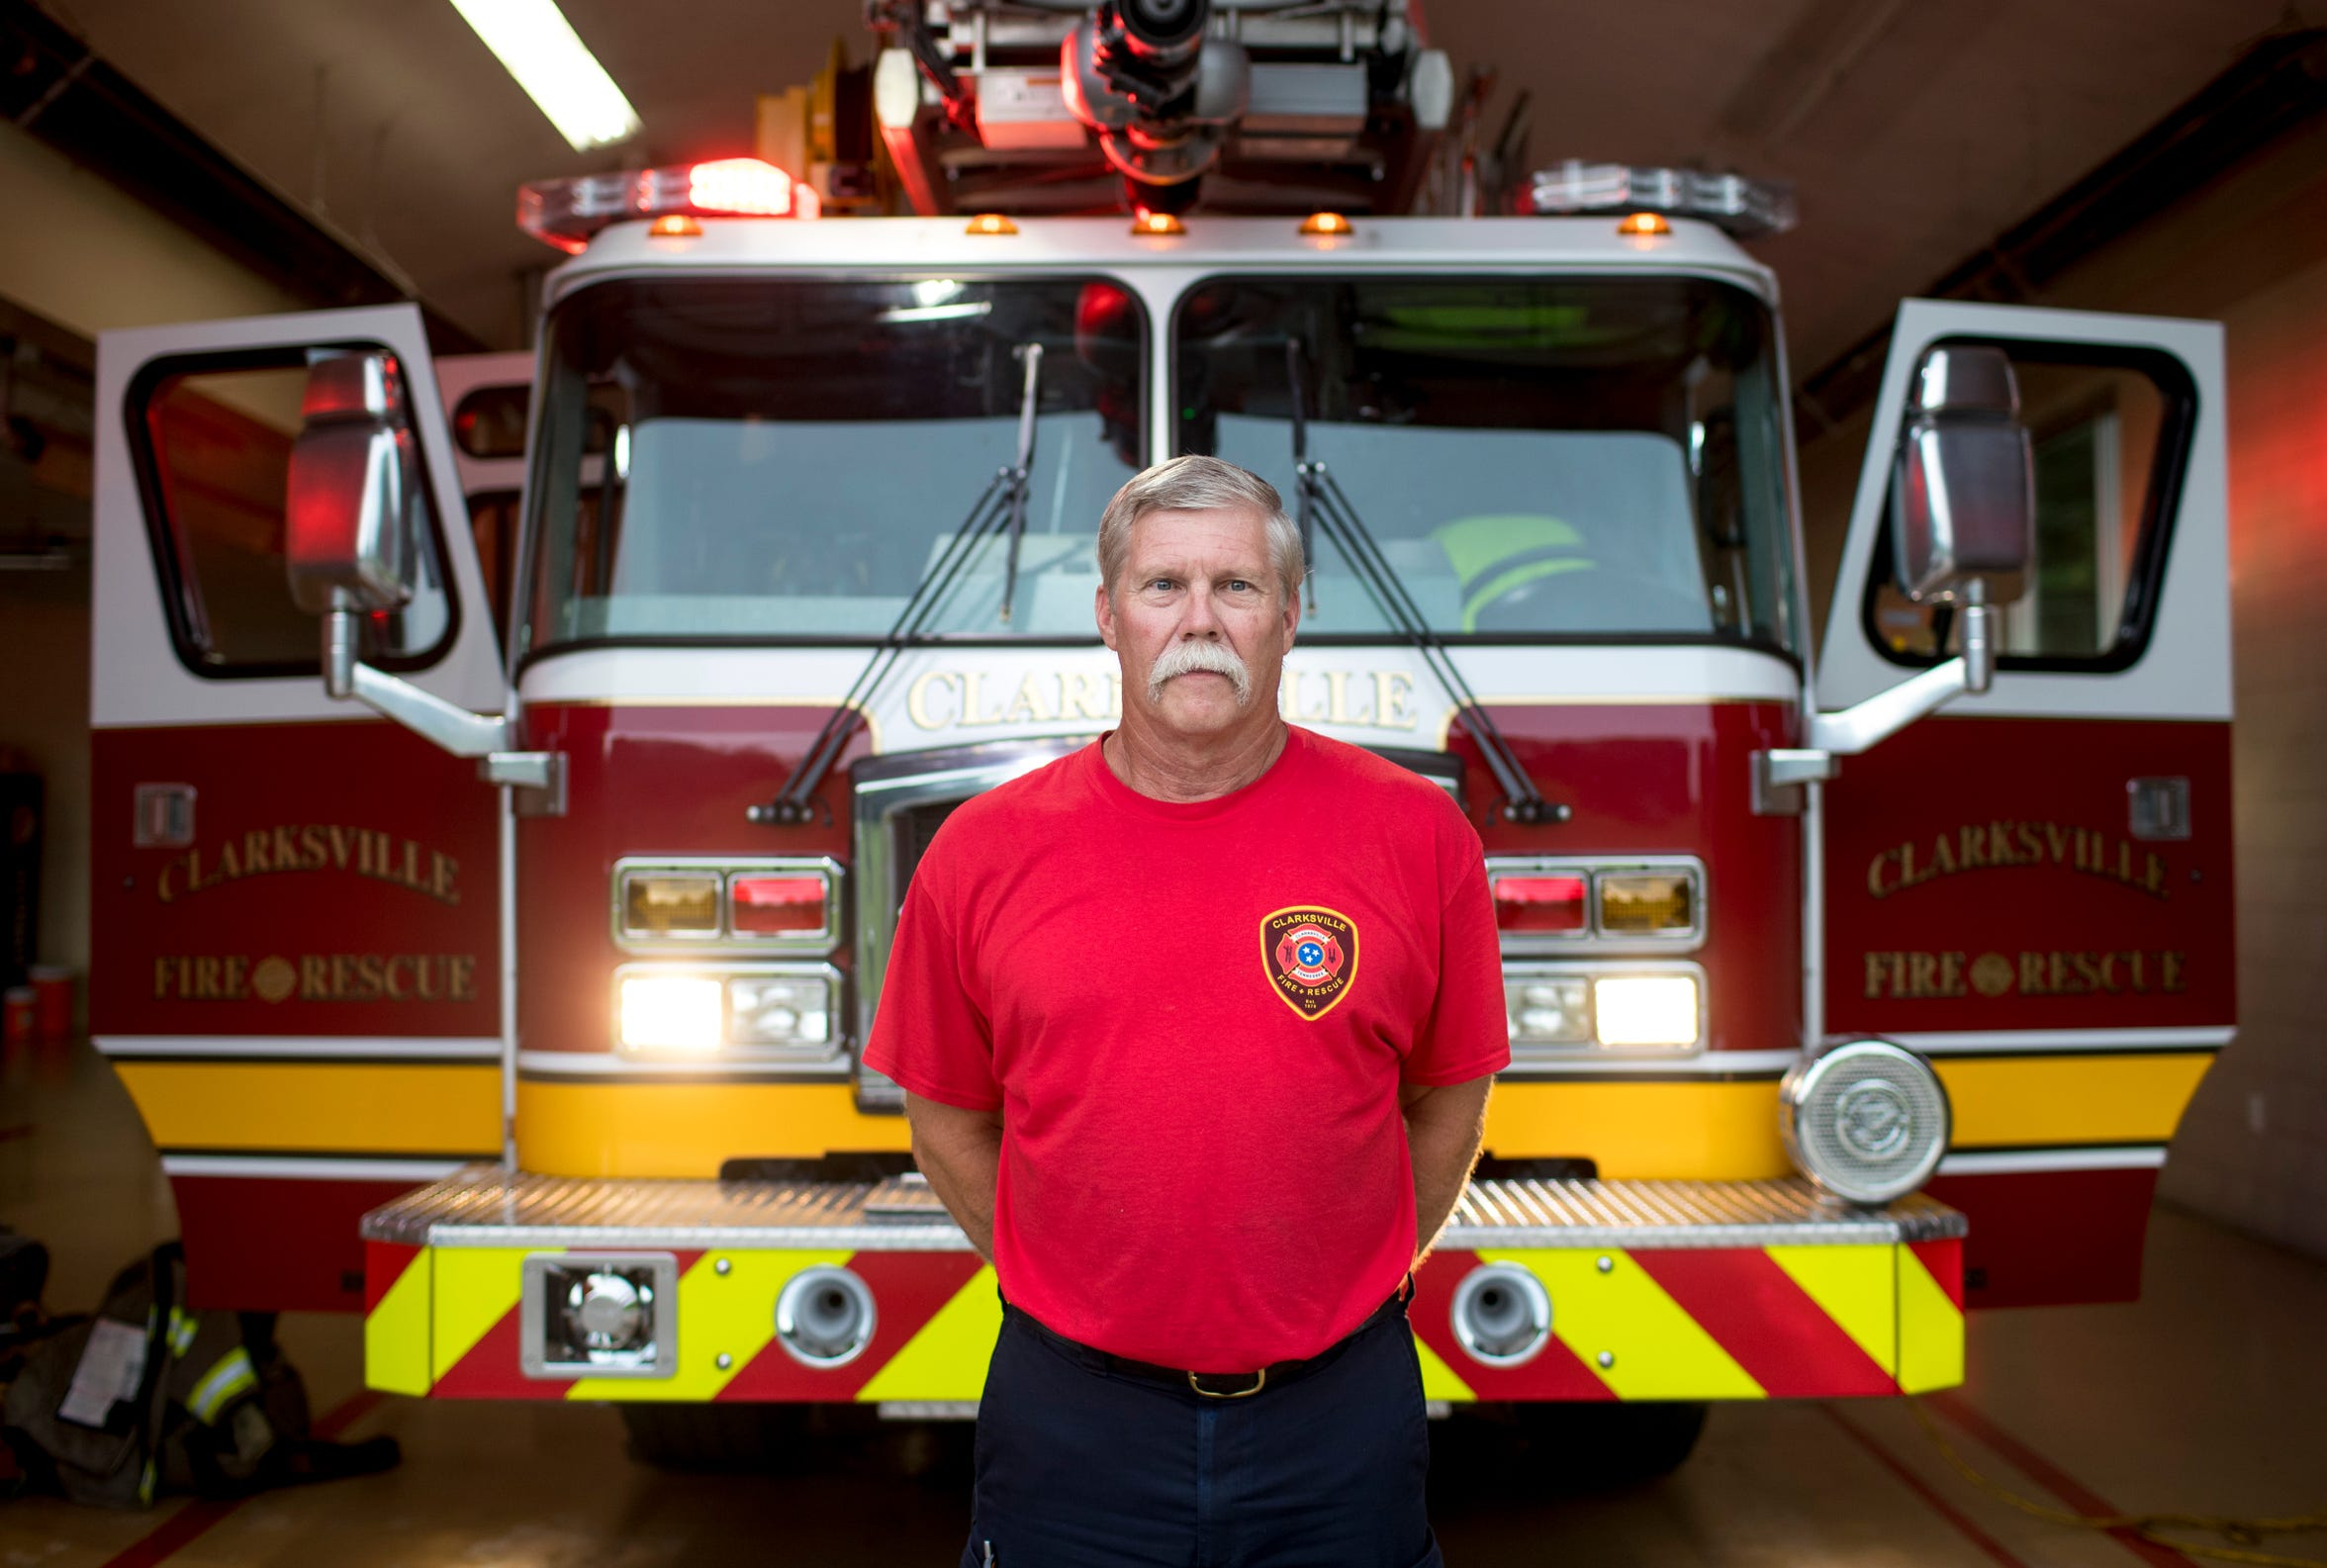 Clarksville Fire Lt. Billy Castle, who is set to retire later this year after over 30 years of service, stands in front of an engine at the end of his shift at Clarksville Fire Station 6 on Aug. 23, 2019.